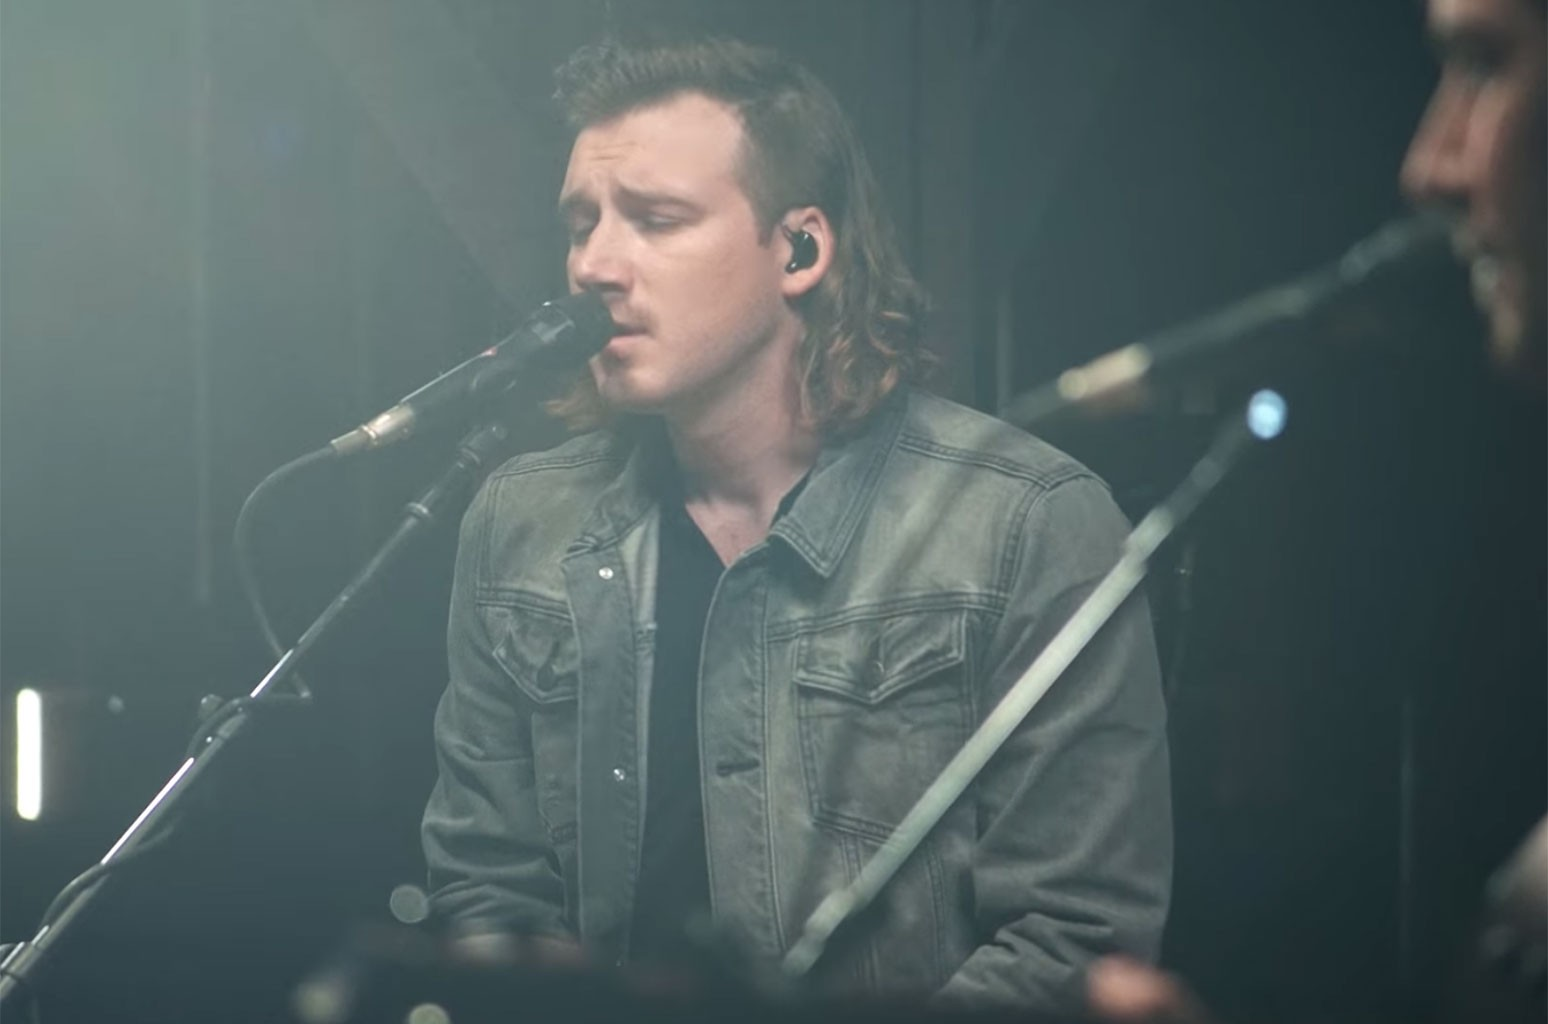 The Players Behind Morgan Wallen's 'Wasted on You': See the Full Credits